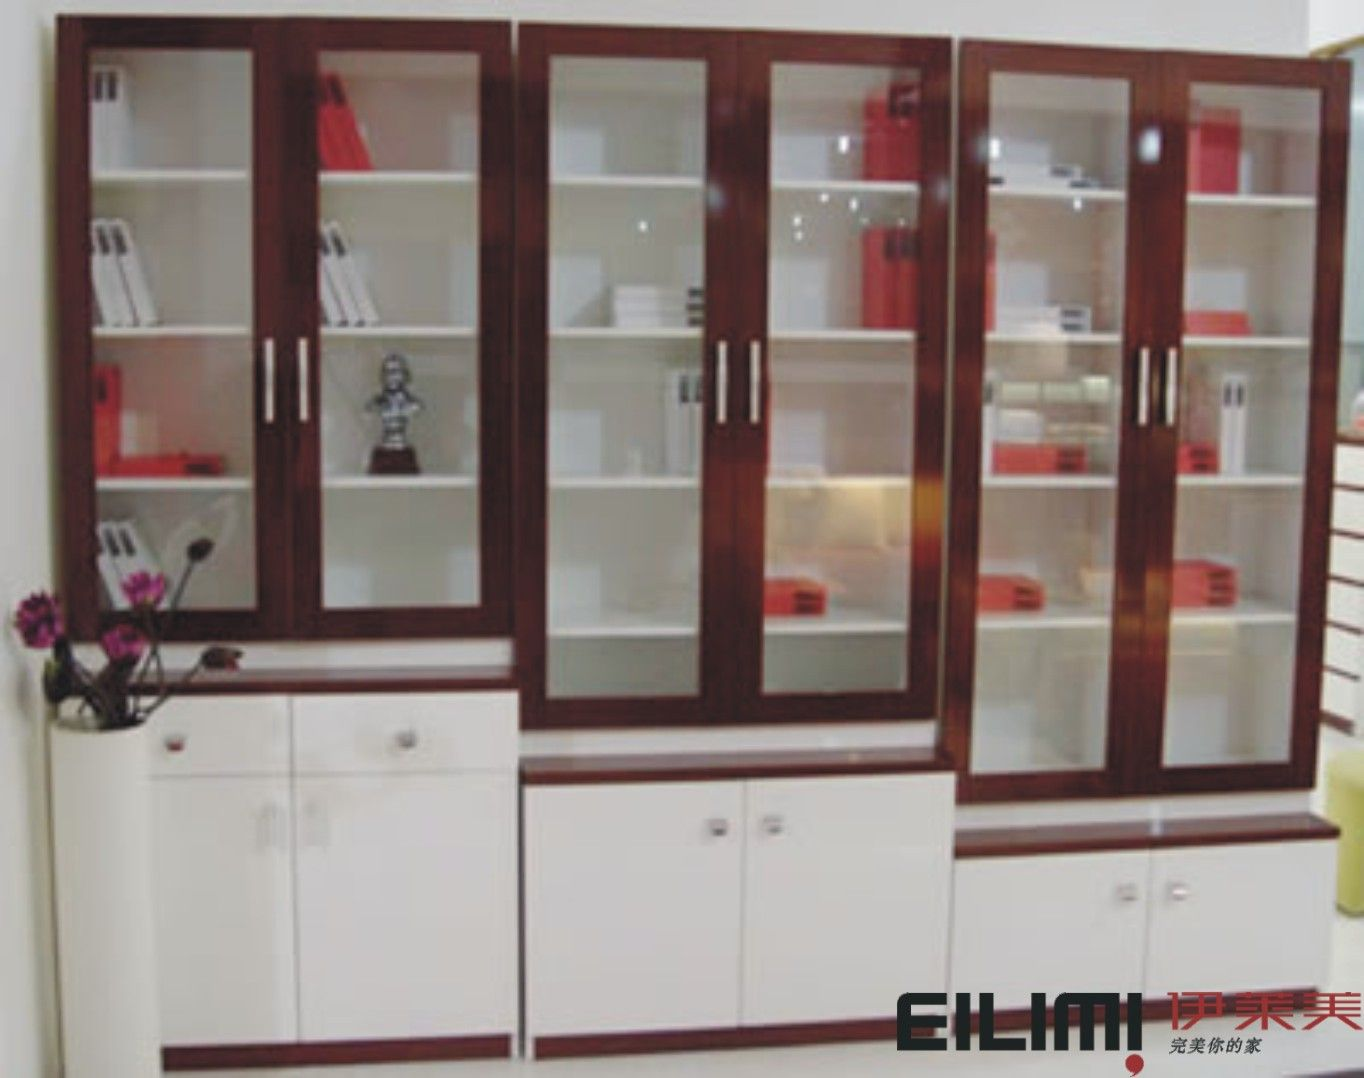 designs under of cabinet large state design built tv cabinets in catalogue mounted room furniture living wooden wall unit